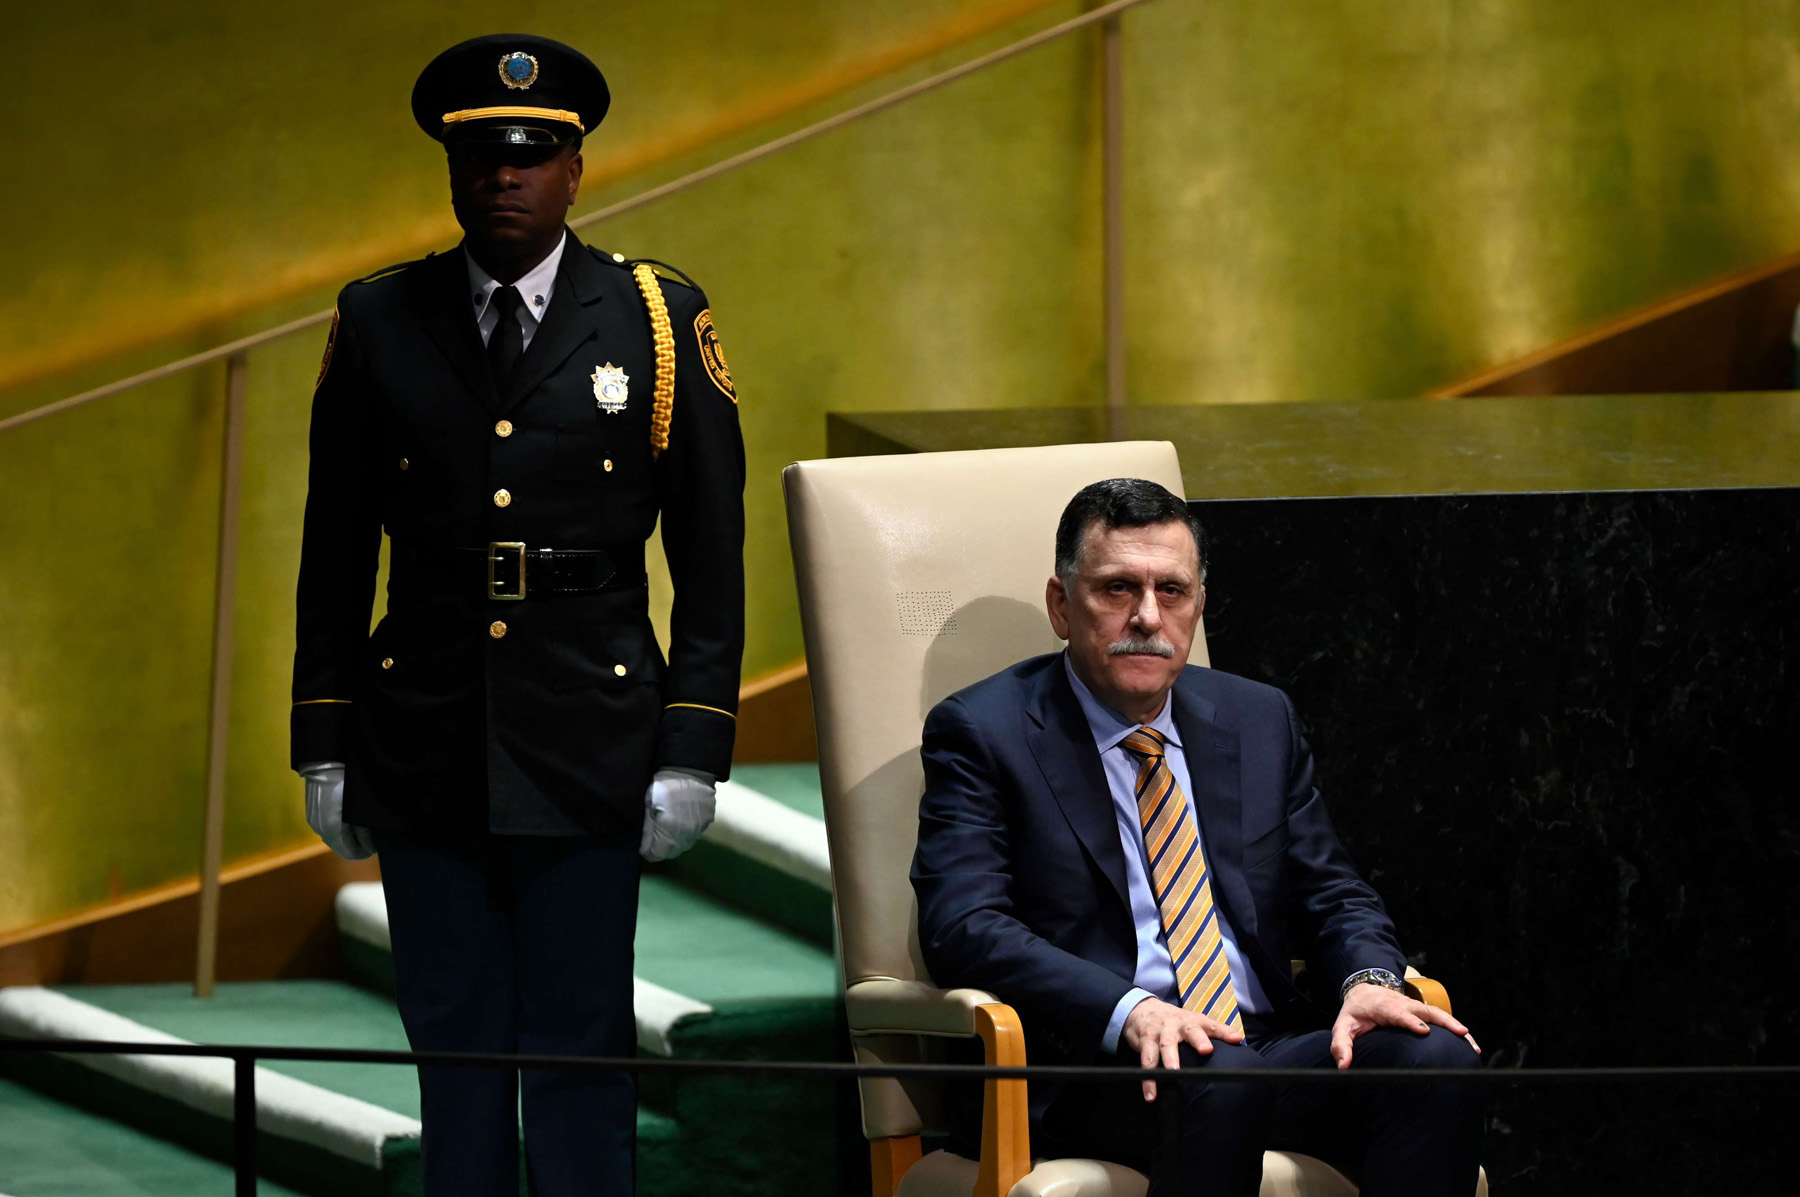 GNA Prime Minister Fayez al-Sarraj waits to speak at the 74th Session of the General Assembly at the UN headquarters in New York, September 25. (AFP)